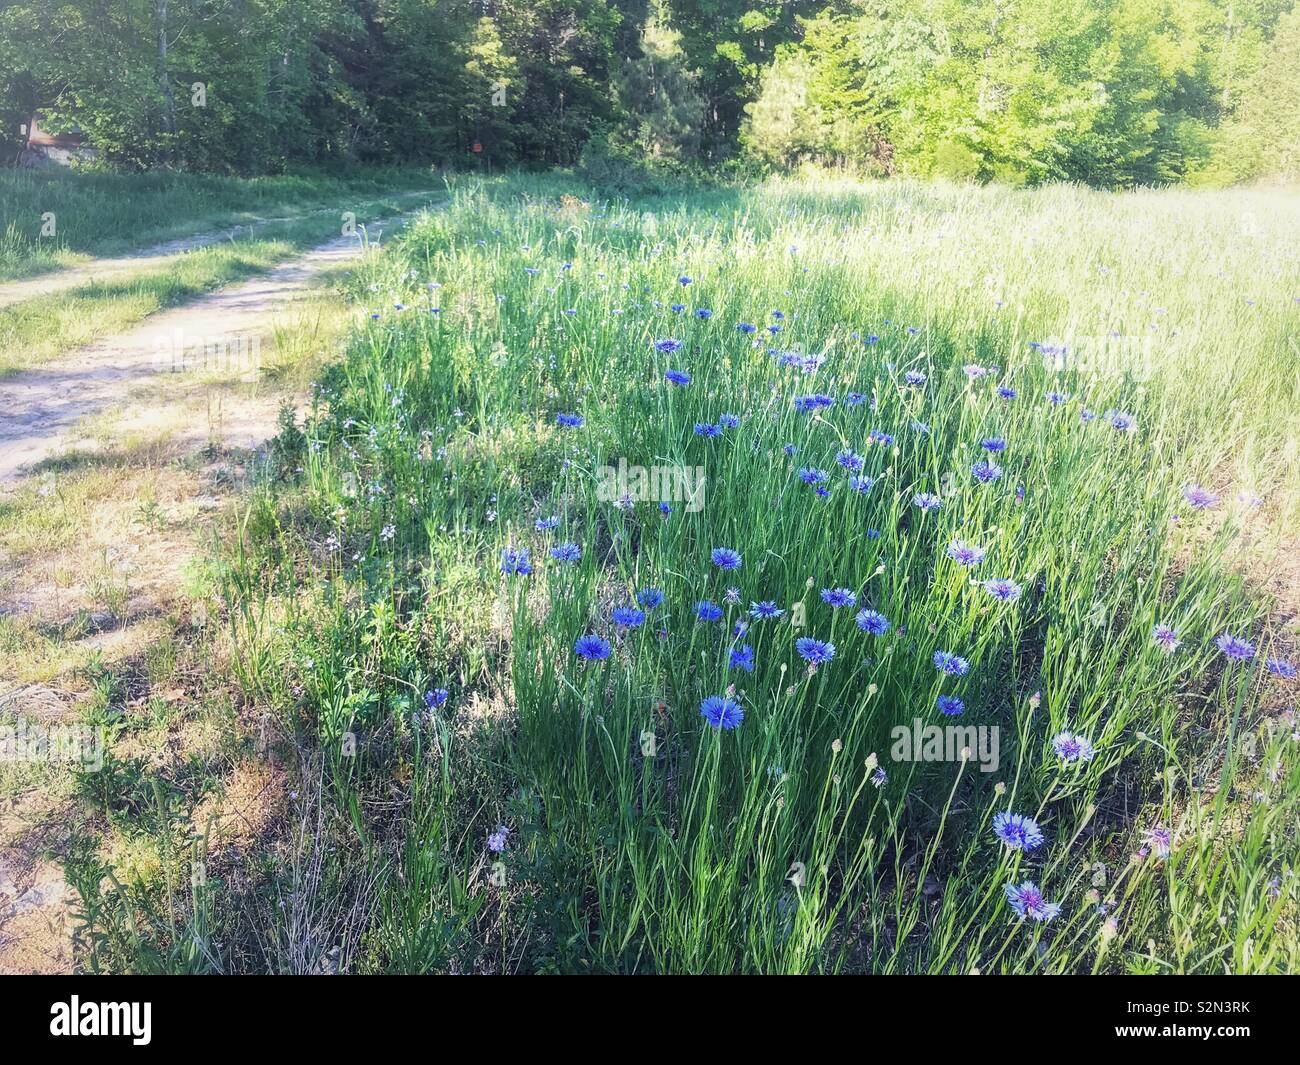 Strip of blue bachelor's buttons in field next to dirt road with sunshine and shadow - Stock Image